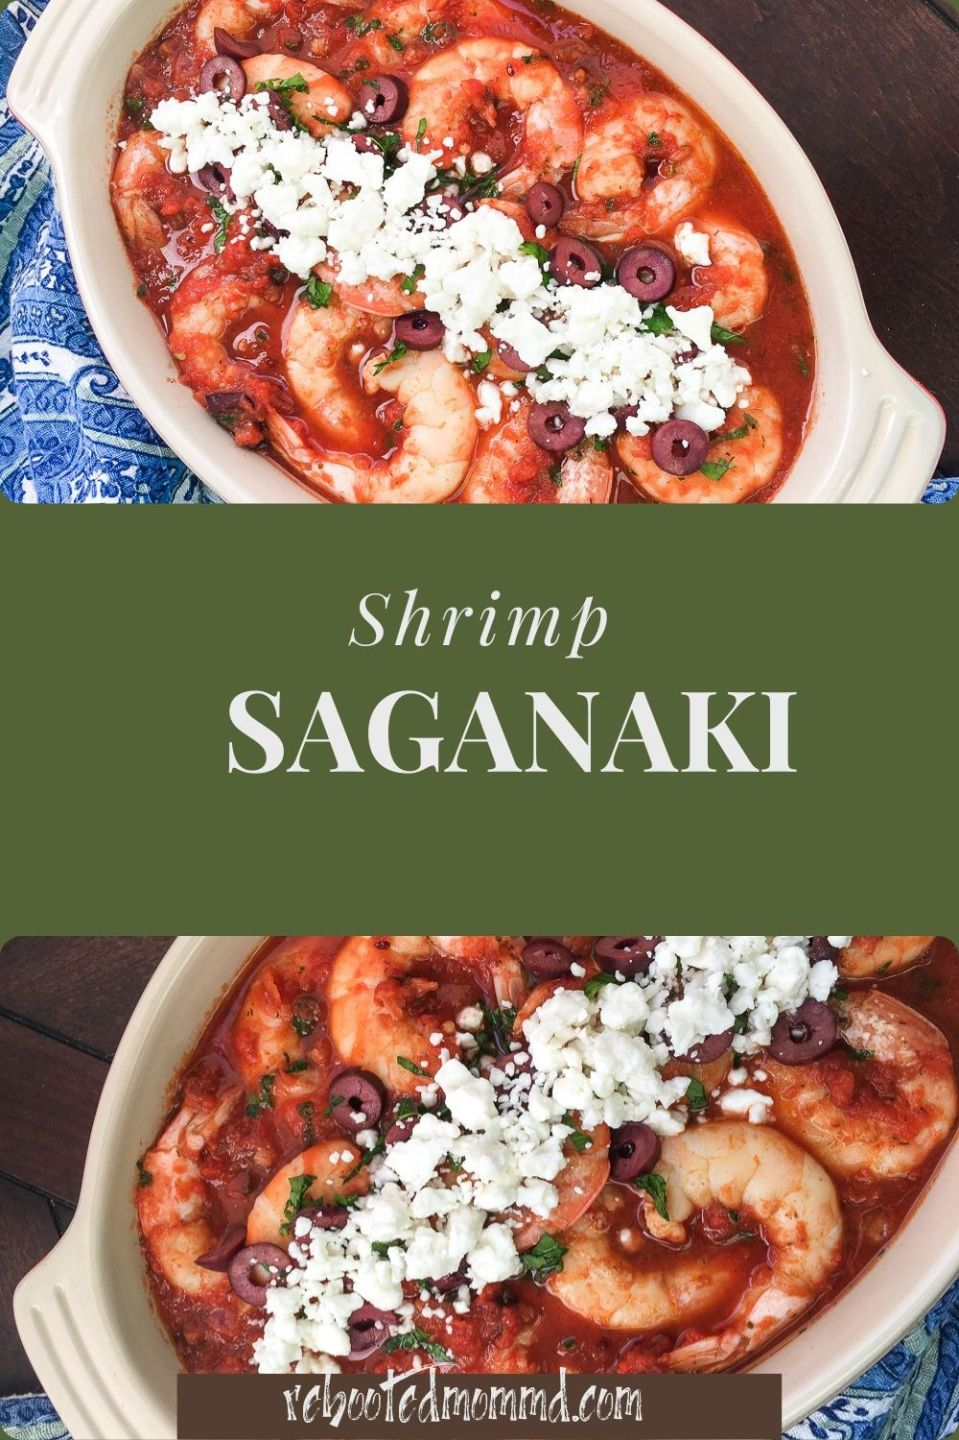 Shrimp Saganaki